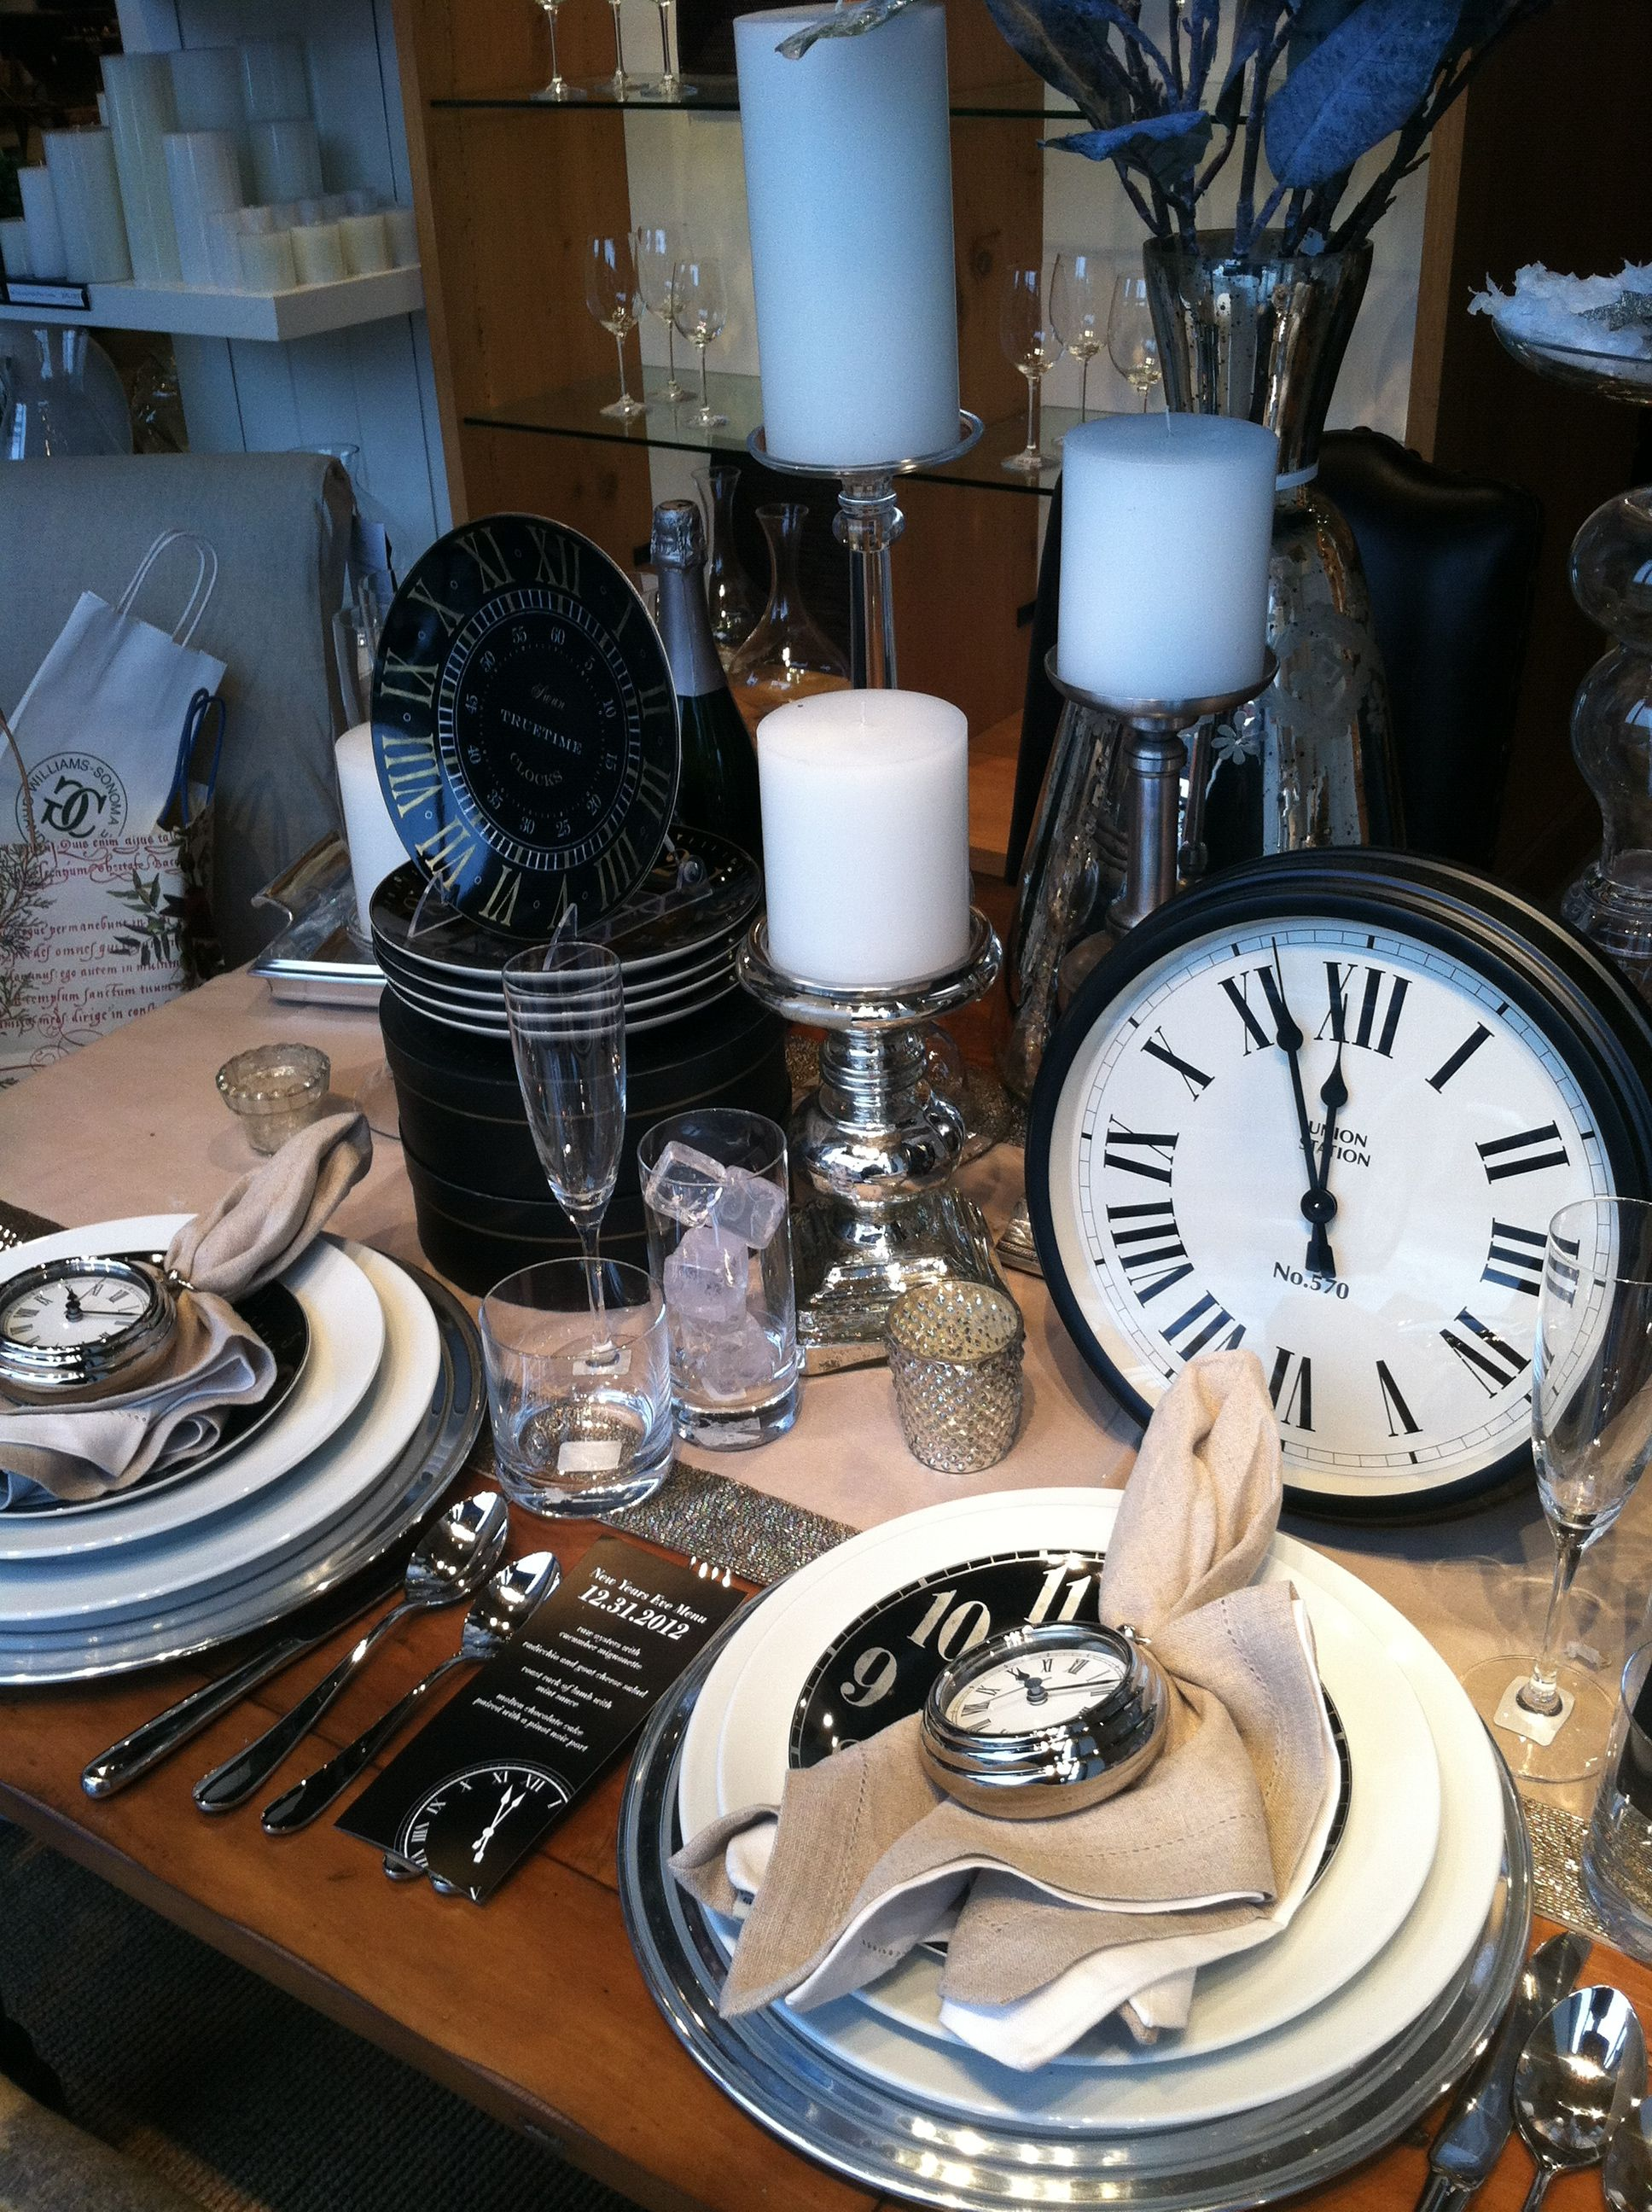 @ Pottery Barn. New Year's Eve Dinner Party!